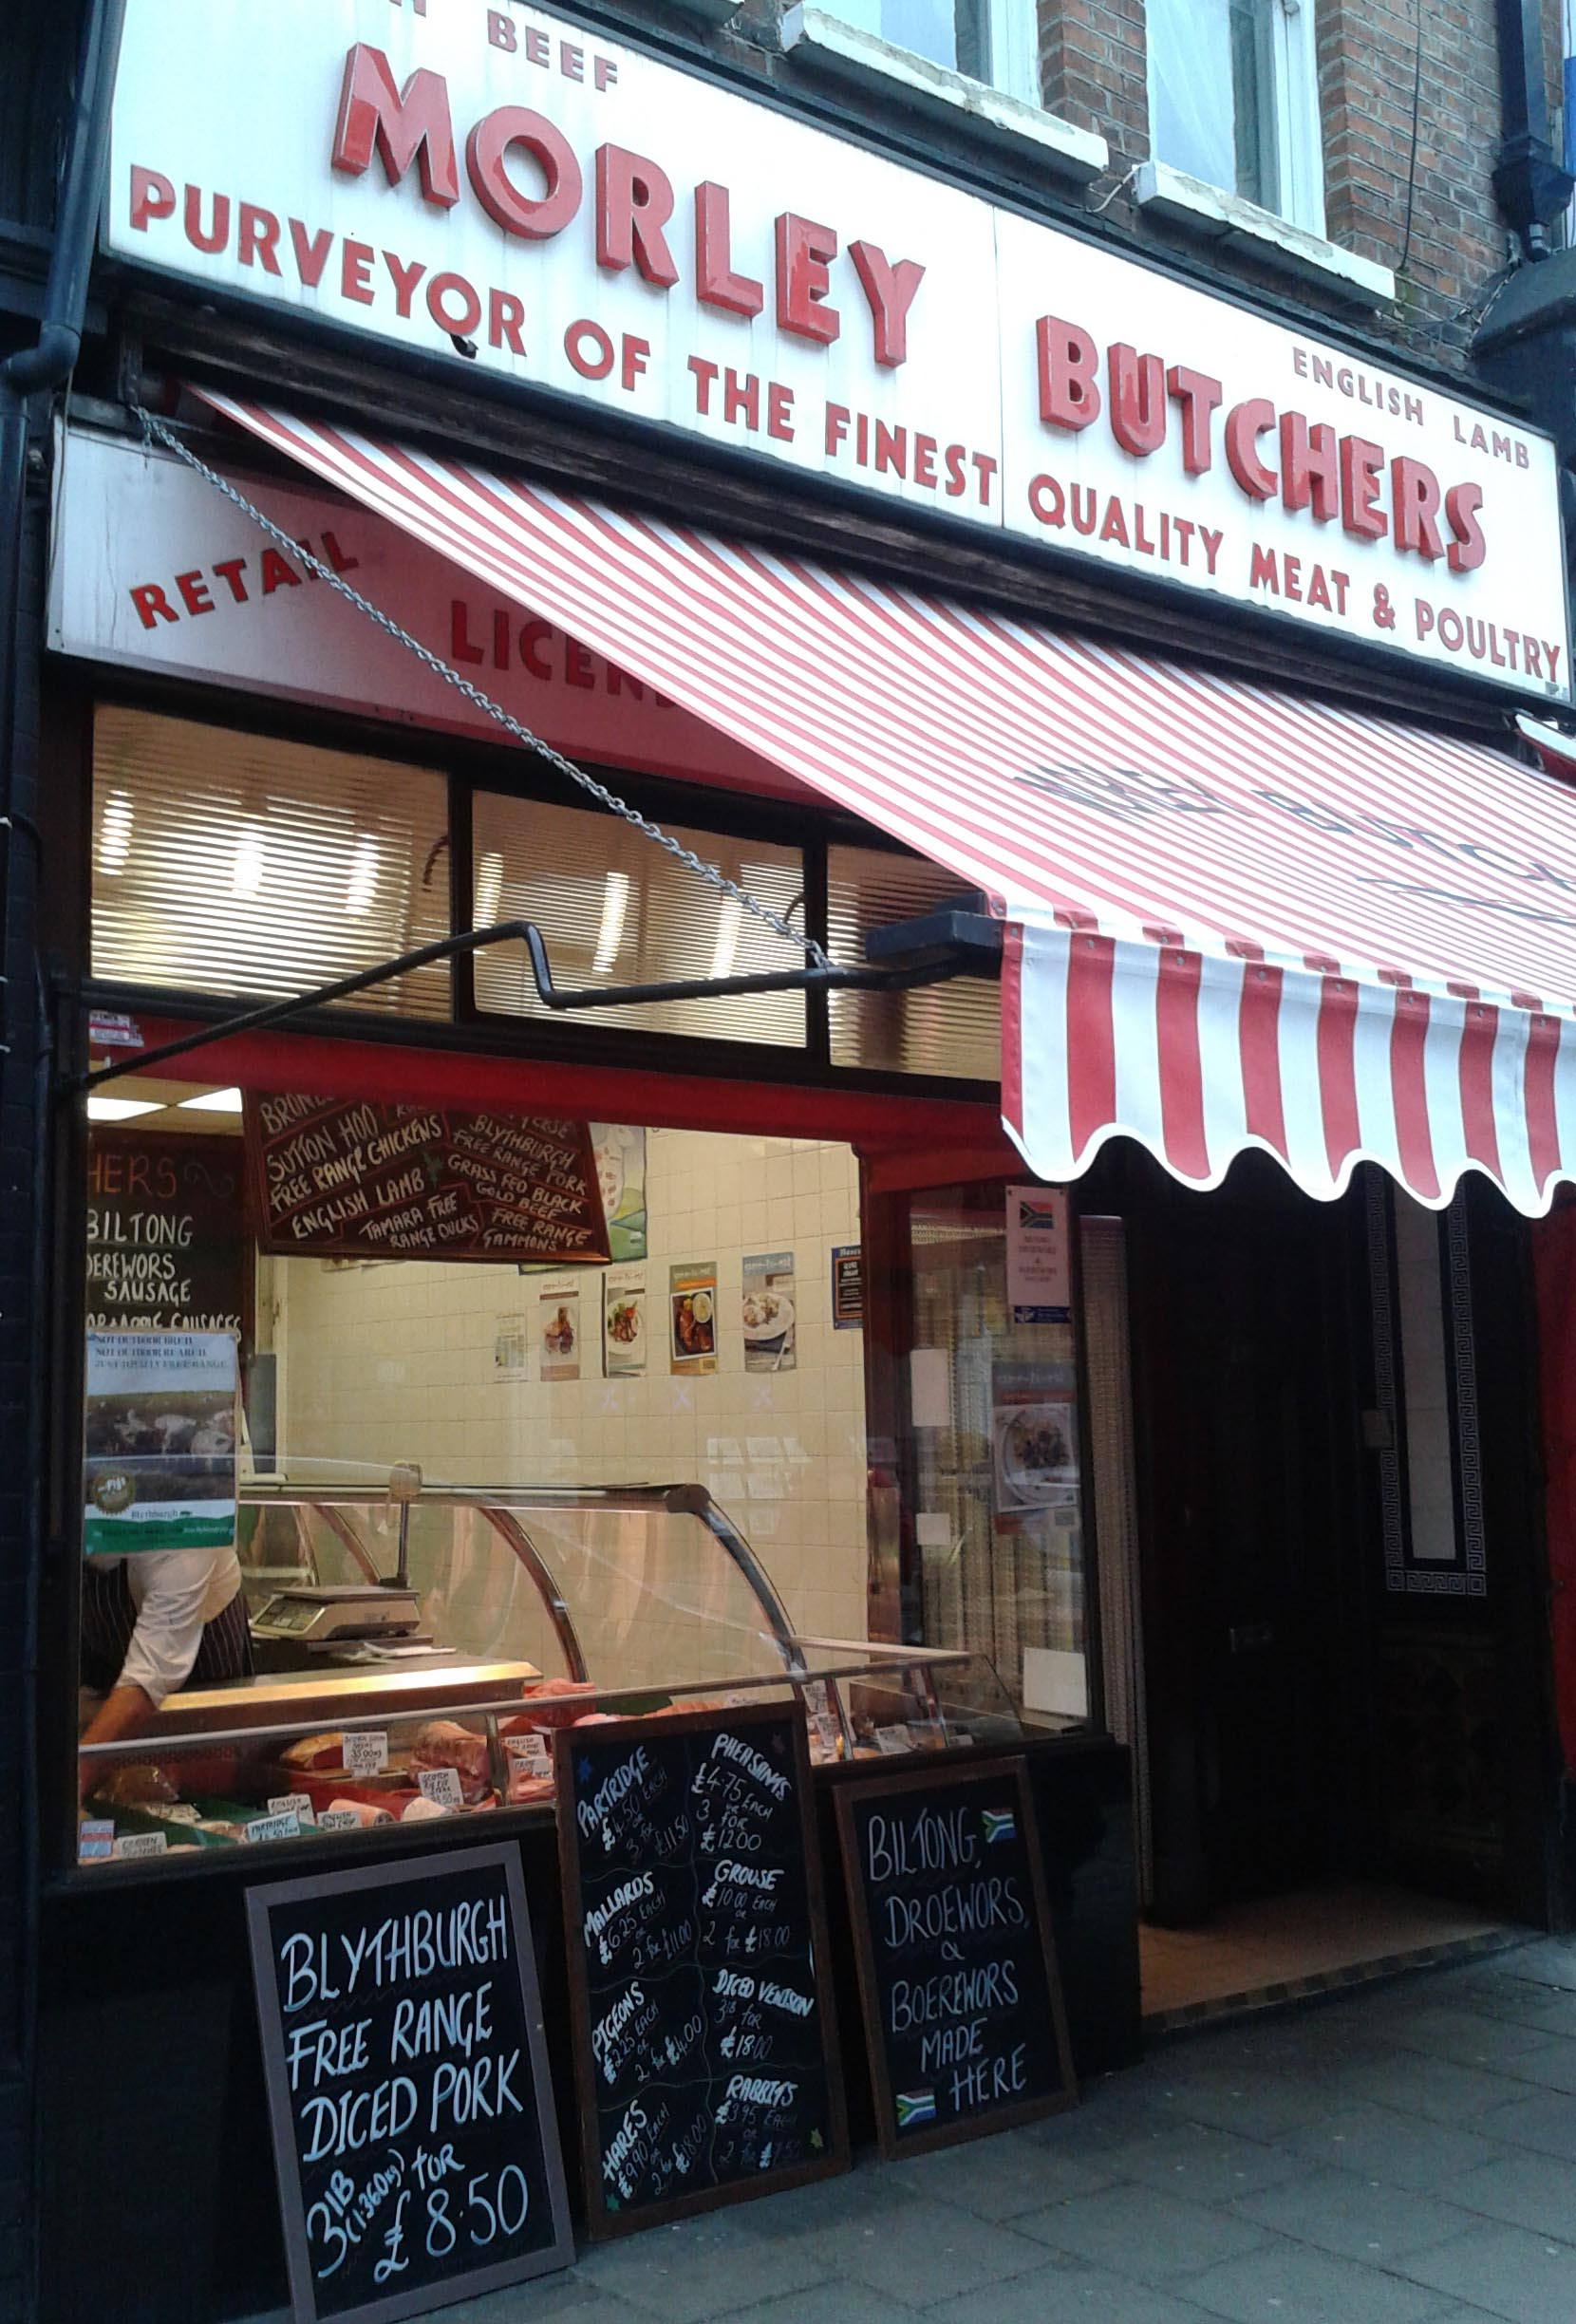 Butchers shop front